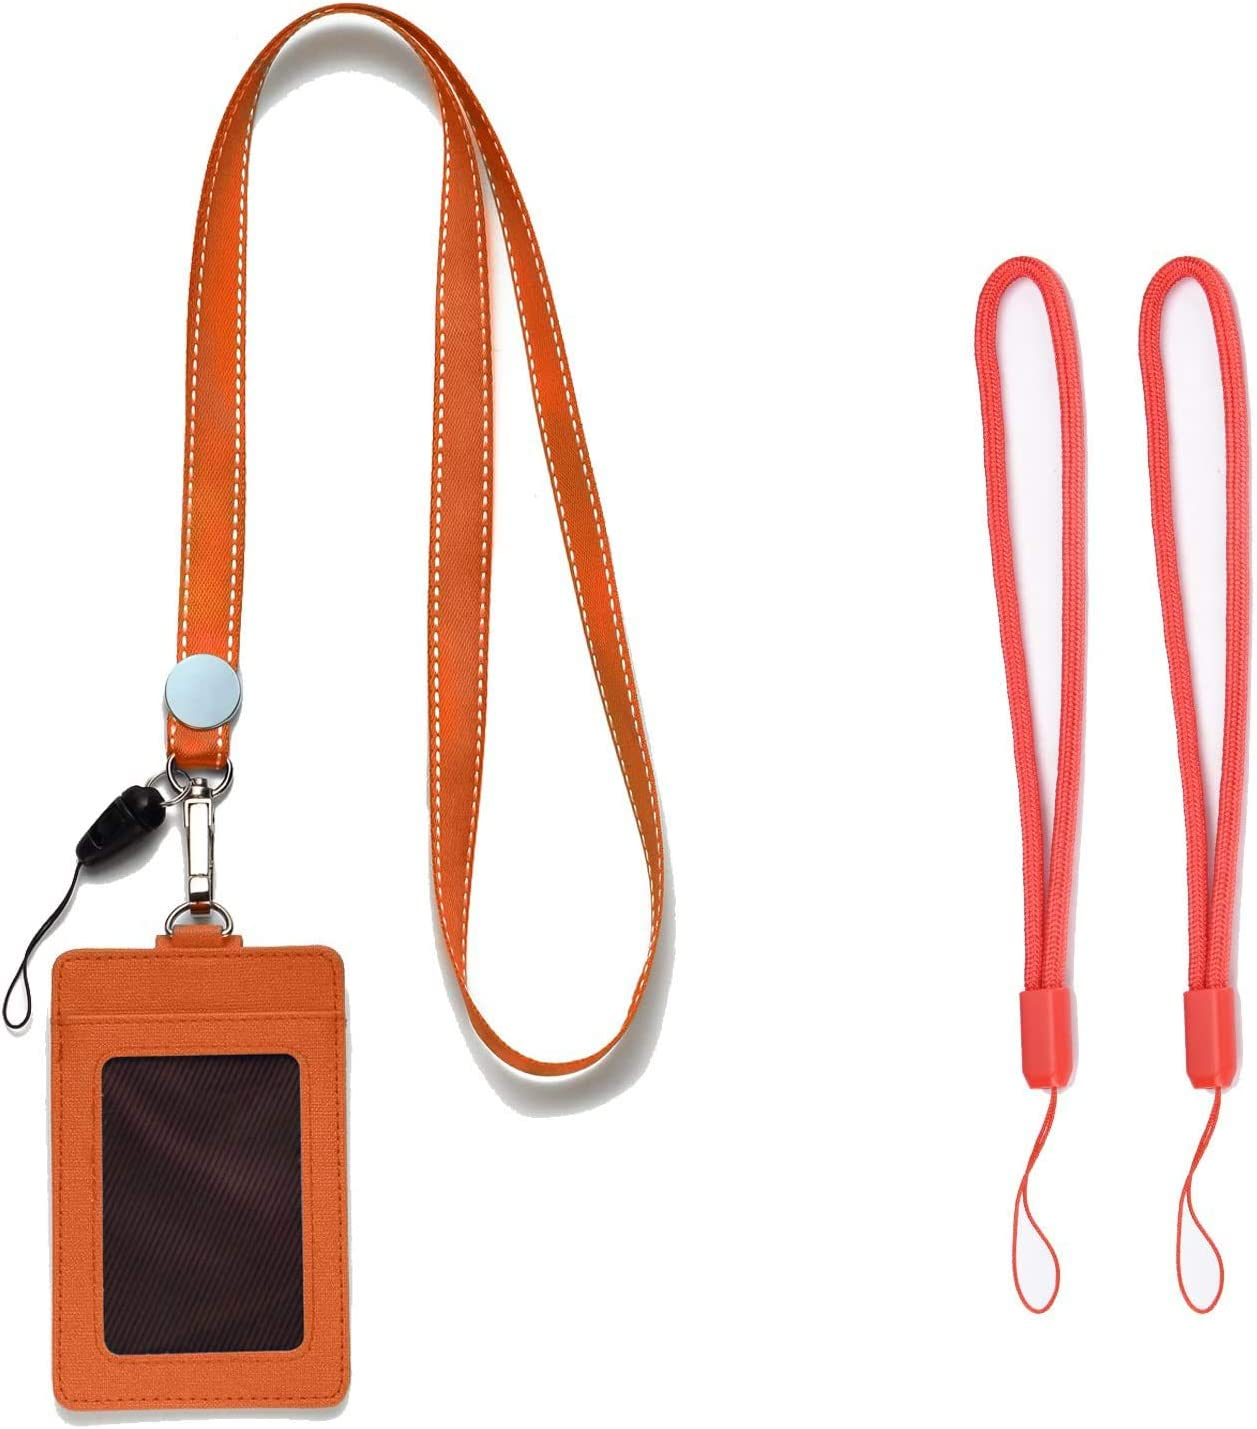 Id Badge Holder With Lanyard Strap For Pu Leather Id Card Holders Orange Lanyards Straps For Keys Kid Women Men Usb 2 Sided Vertical Badges Holders 1 Id Window 2 Card Slot Pack Of 1 Office Products Amazon Com